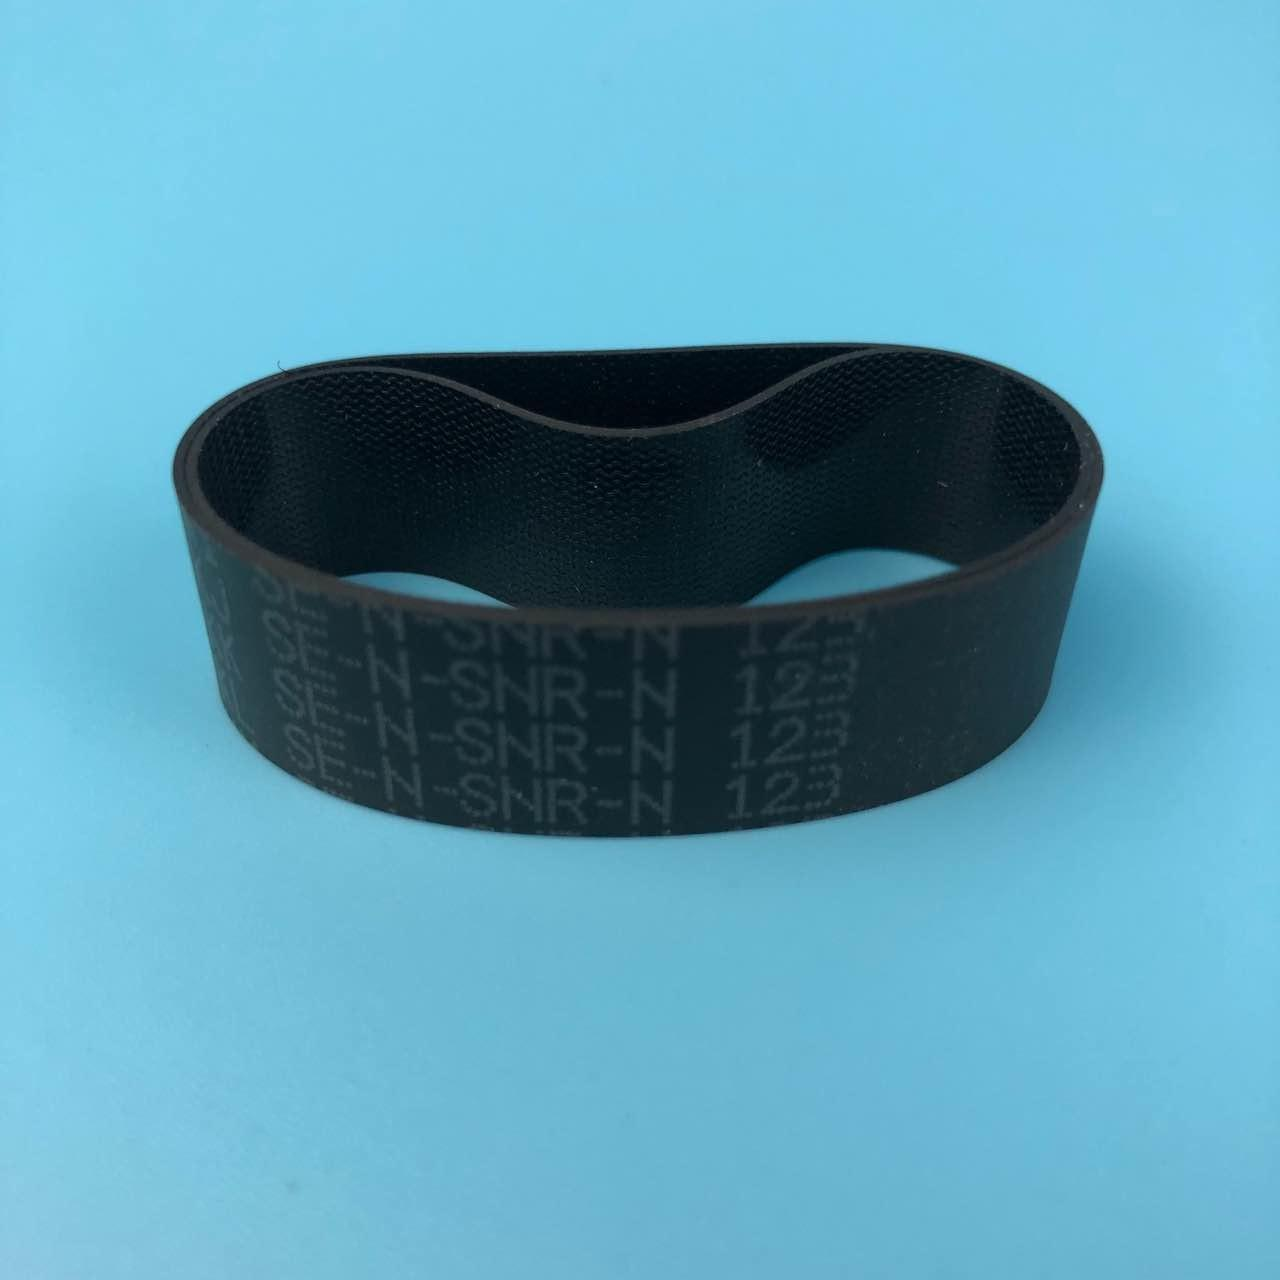 Buy cheap 998-0910179 NCR ATM Belt With No Metal UD600 Flat SE-N-SBR 14*123*0.65mm from wholesalers